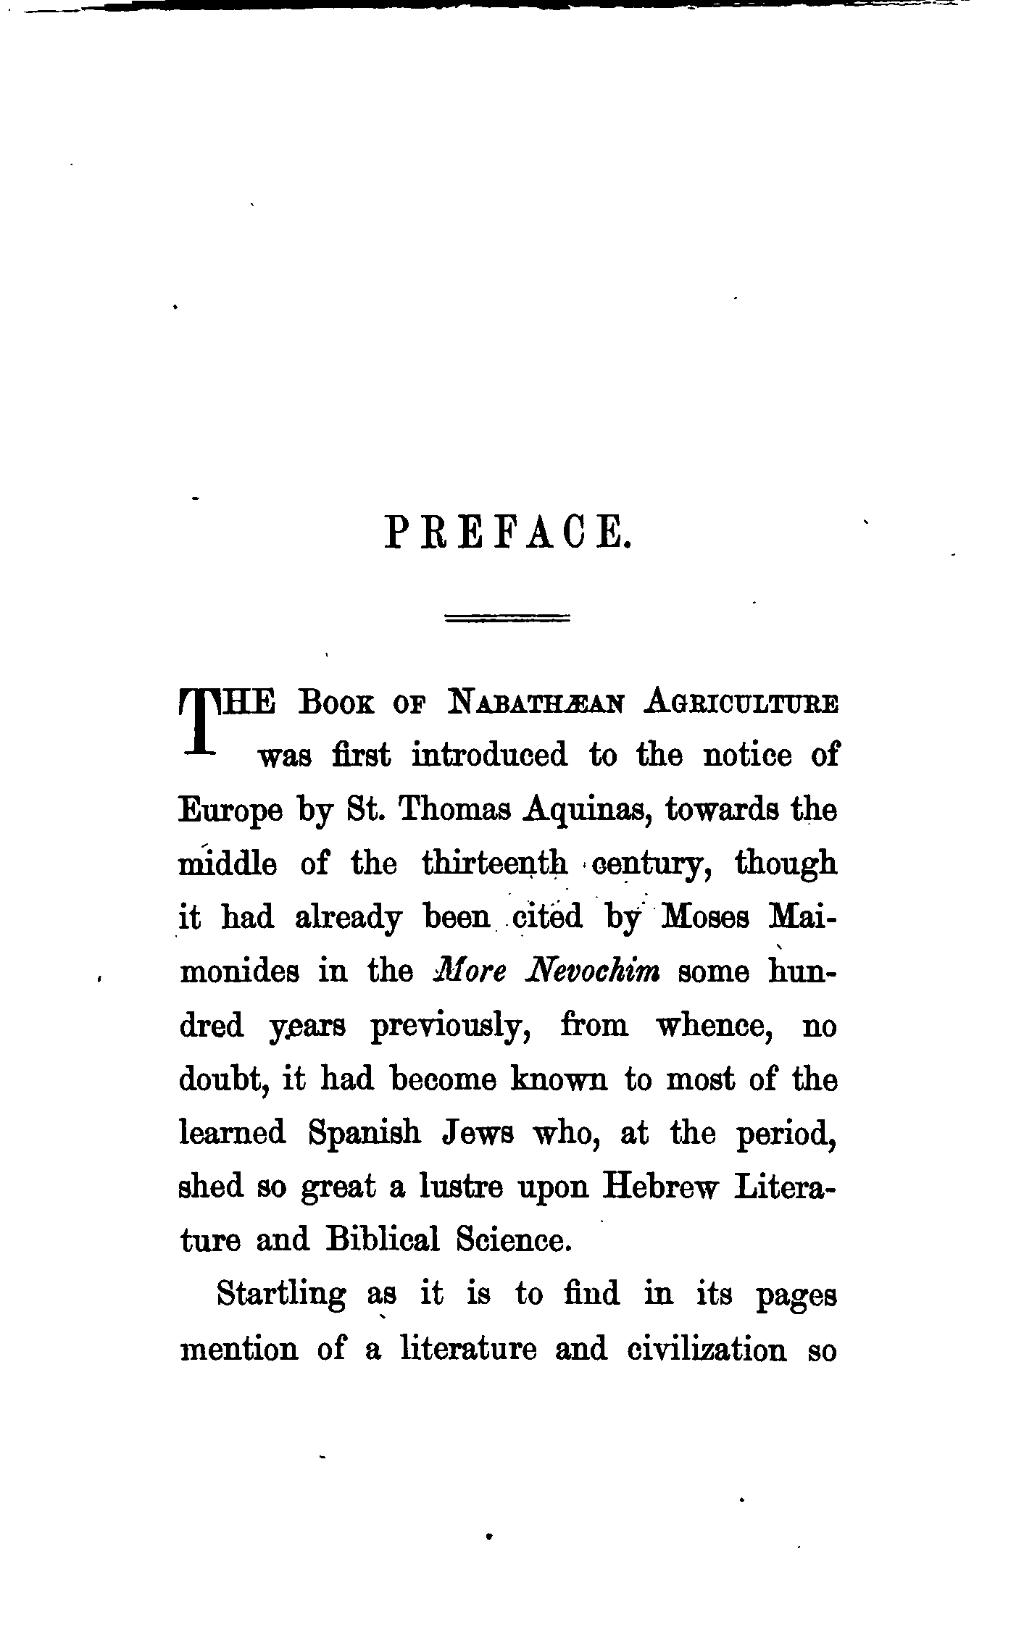 002 Essay Example Page3 1024px On The Agedtiquity Of Book Nabathaean Agriculture Djvu How To Mention In Magnificent A An Reference Harvard Style Oscola Uk Full